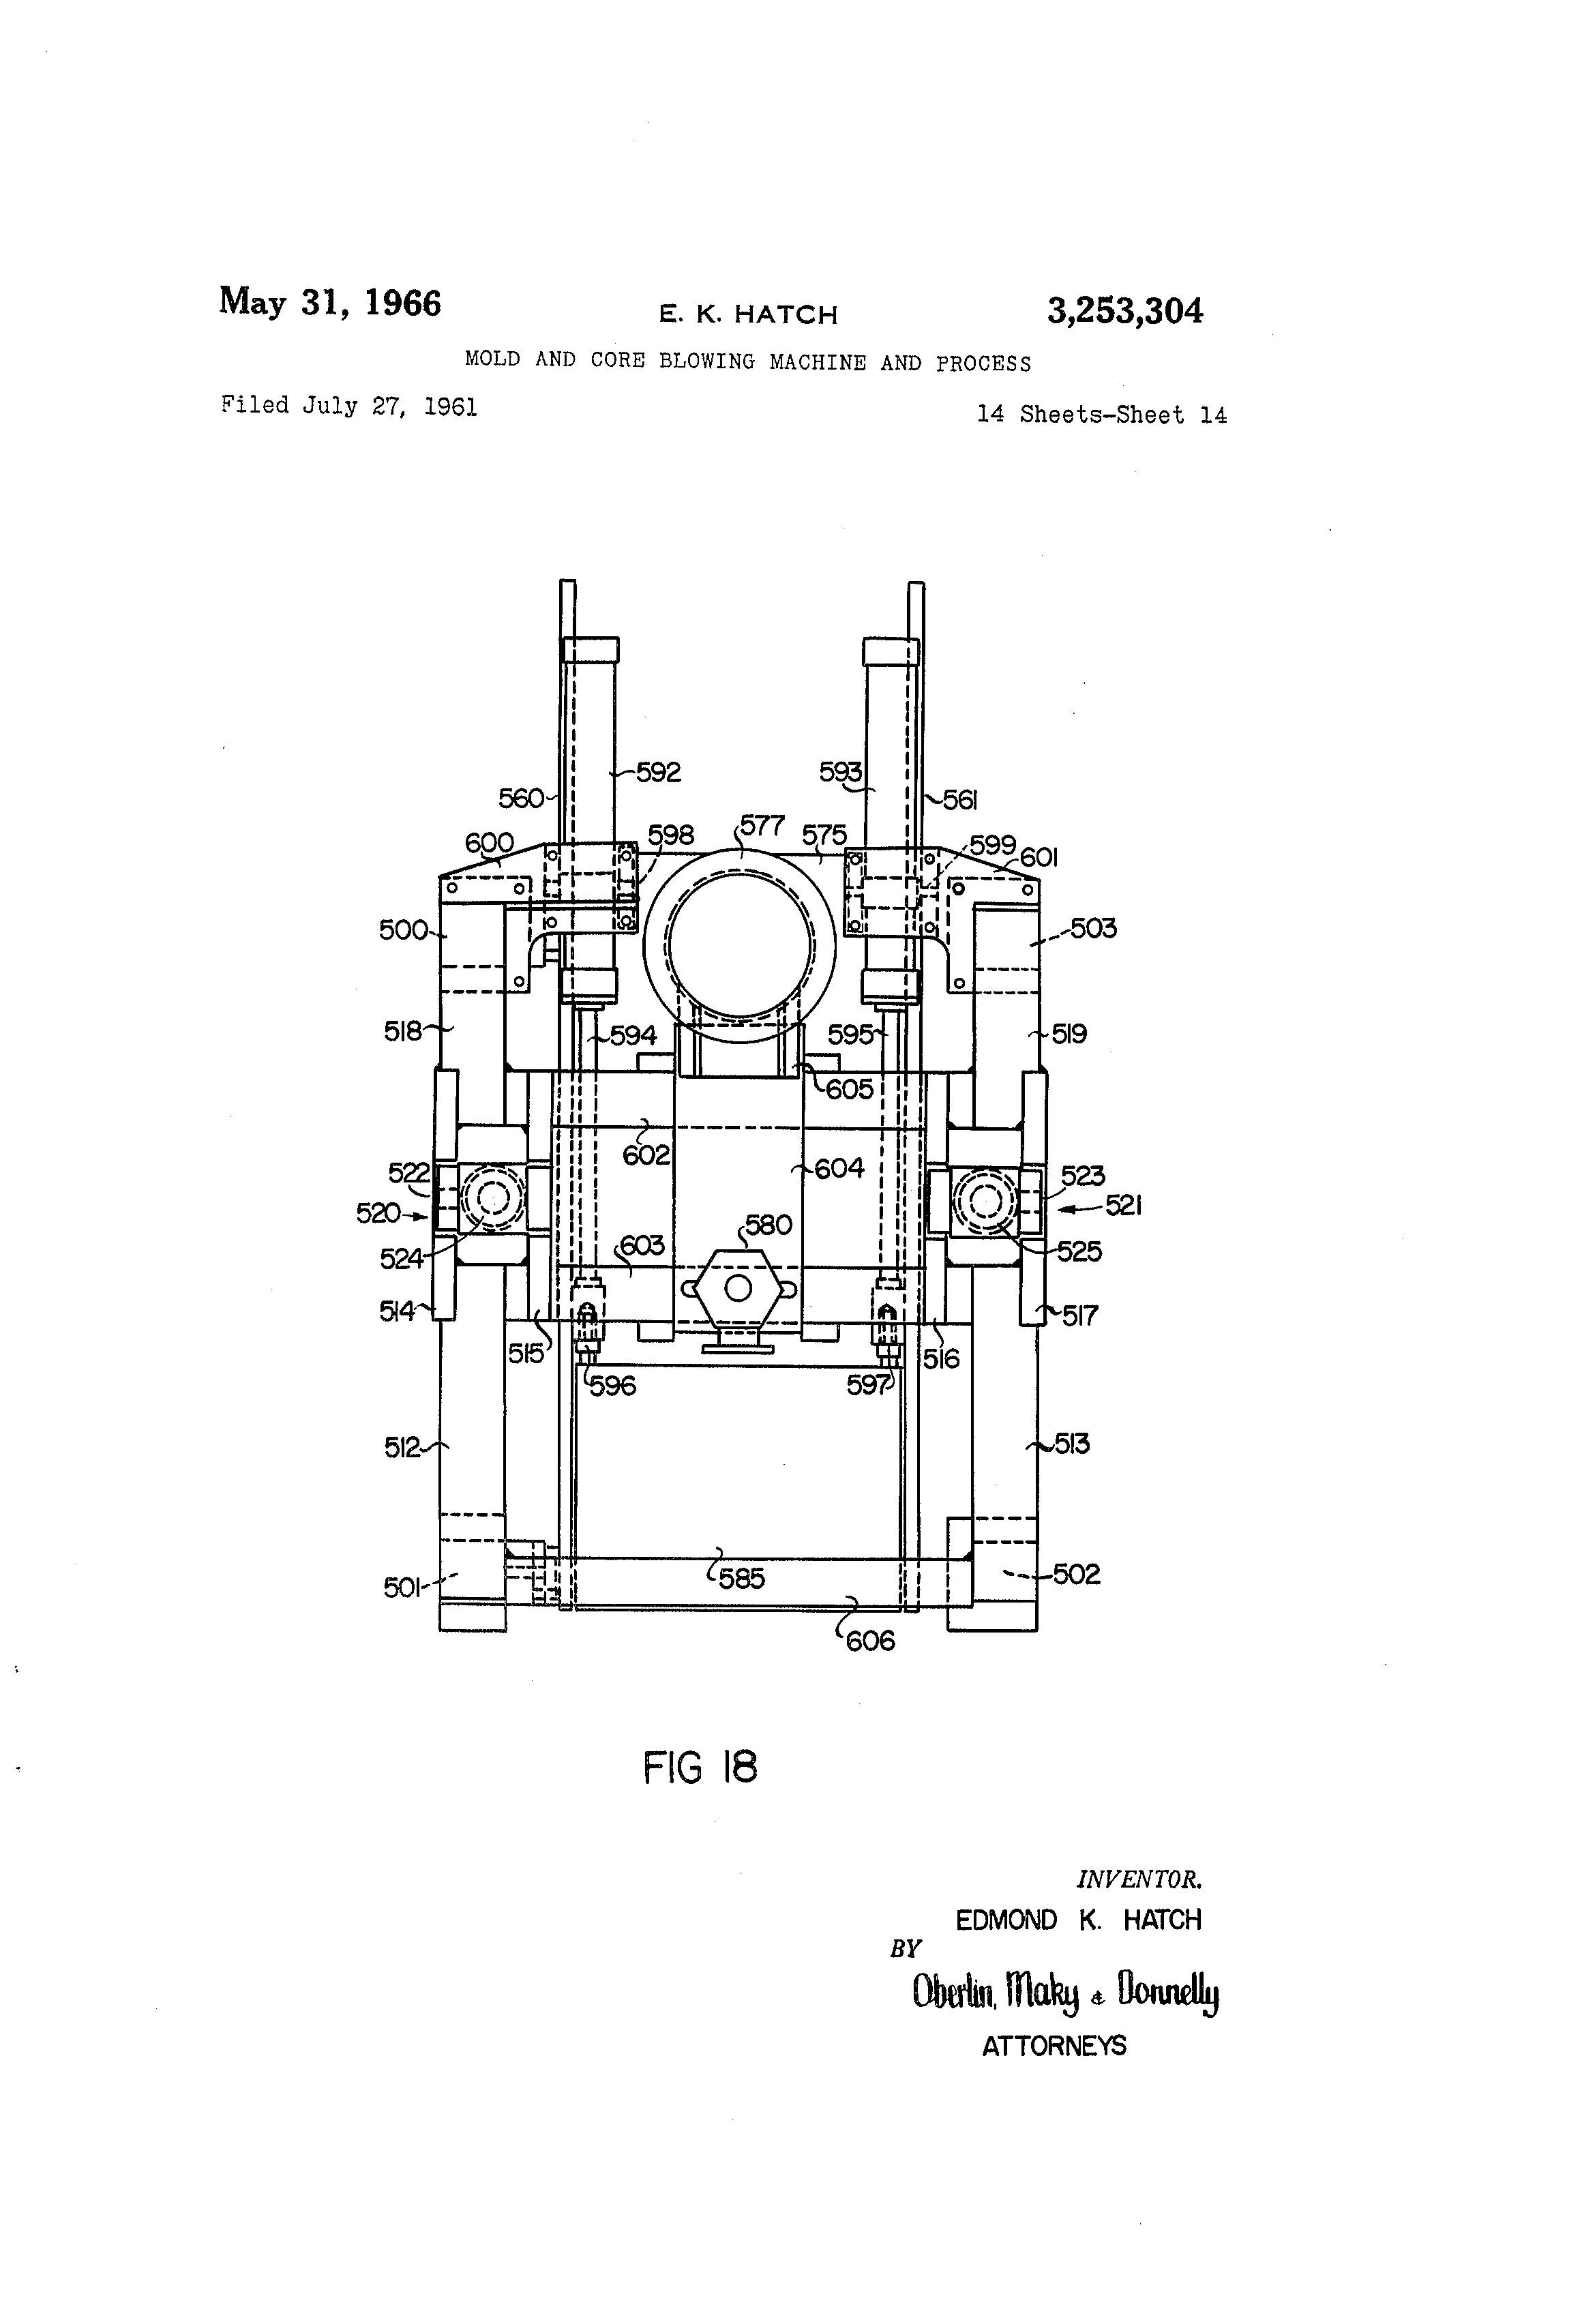 US3253304 13 patent us3253304 mold and core blowing machine and process  at bakdesigns.co